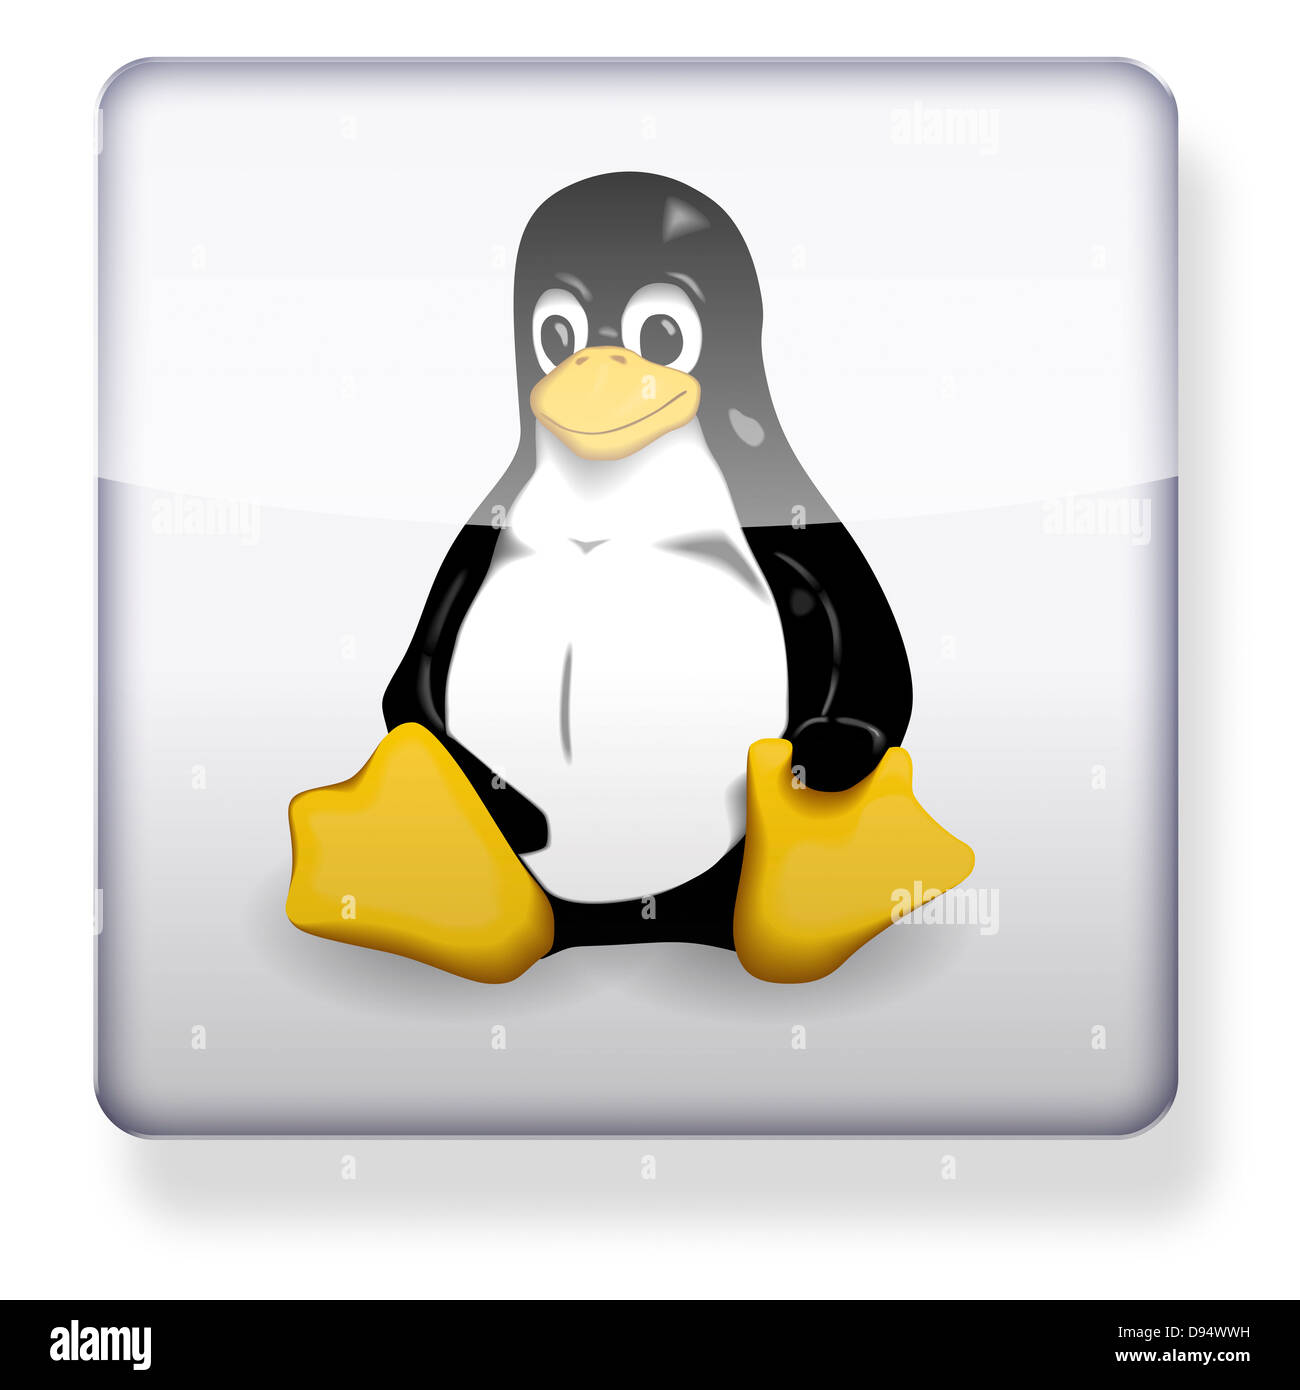 Linux logo as an app icon. Clipping path included. - Stock Image